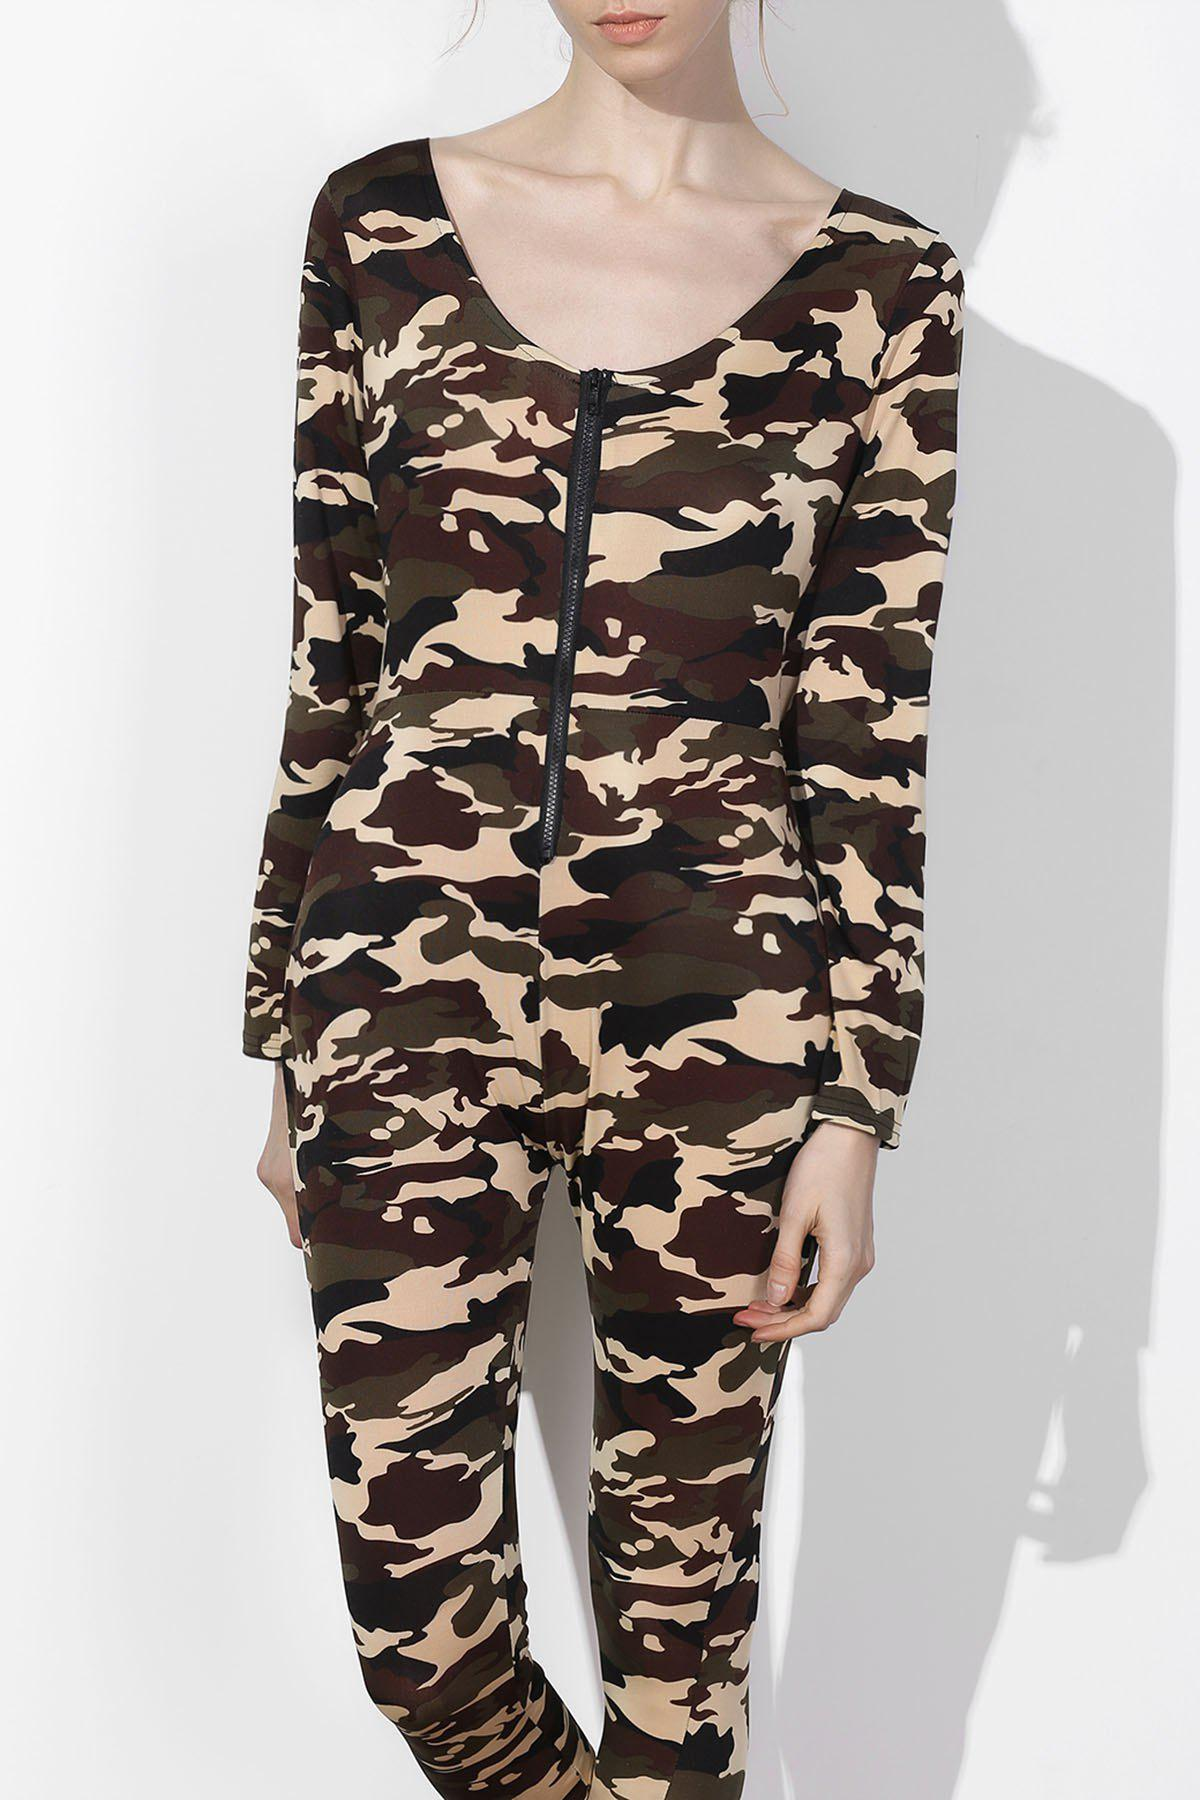 Sexy Camo Plunging Neck Long Sleeve Jumpsuit For Women plunging neck long sleeve skirted jumpsuit